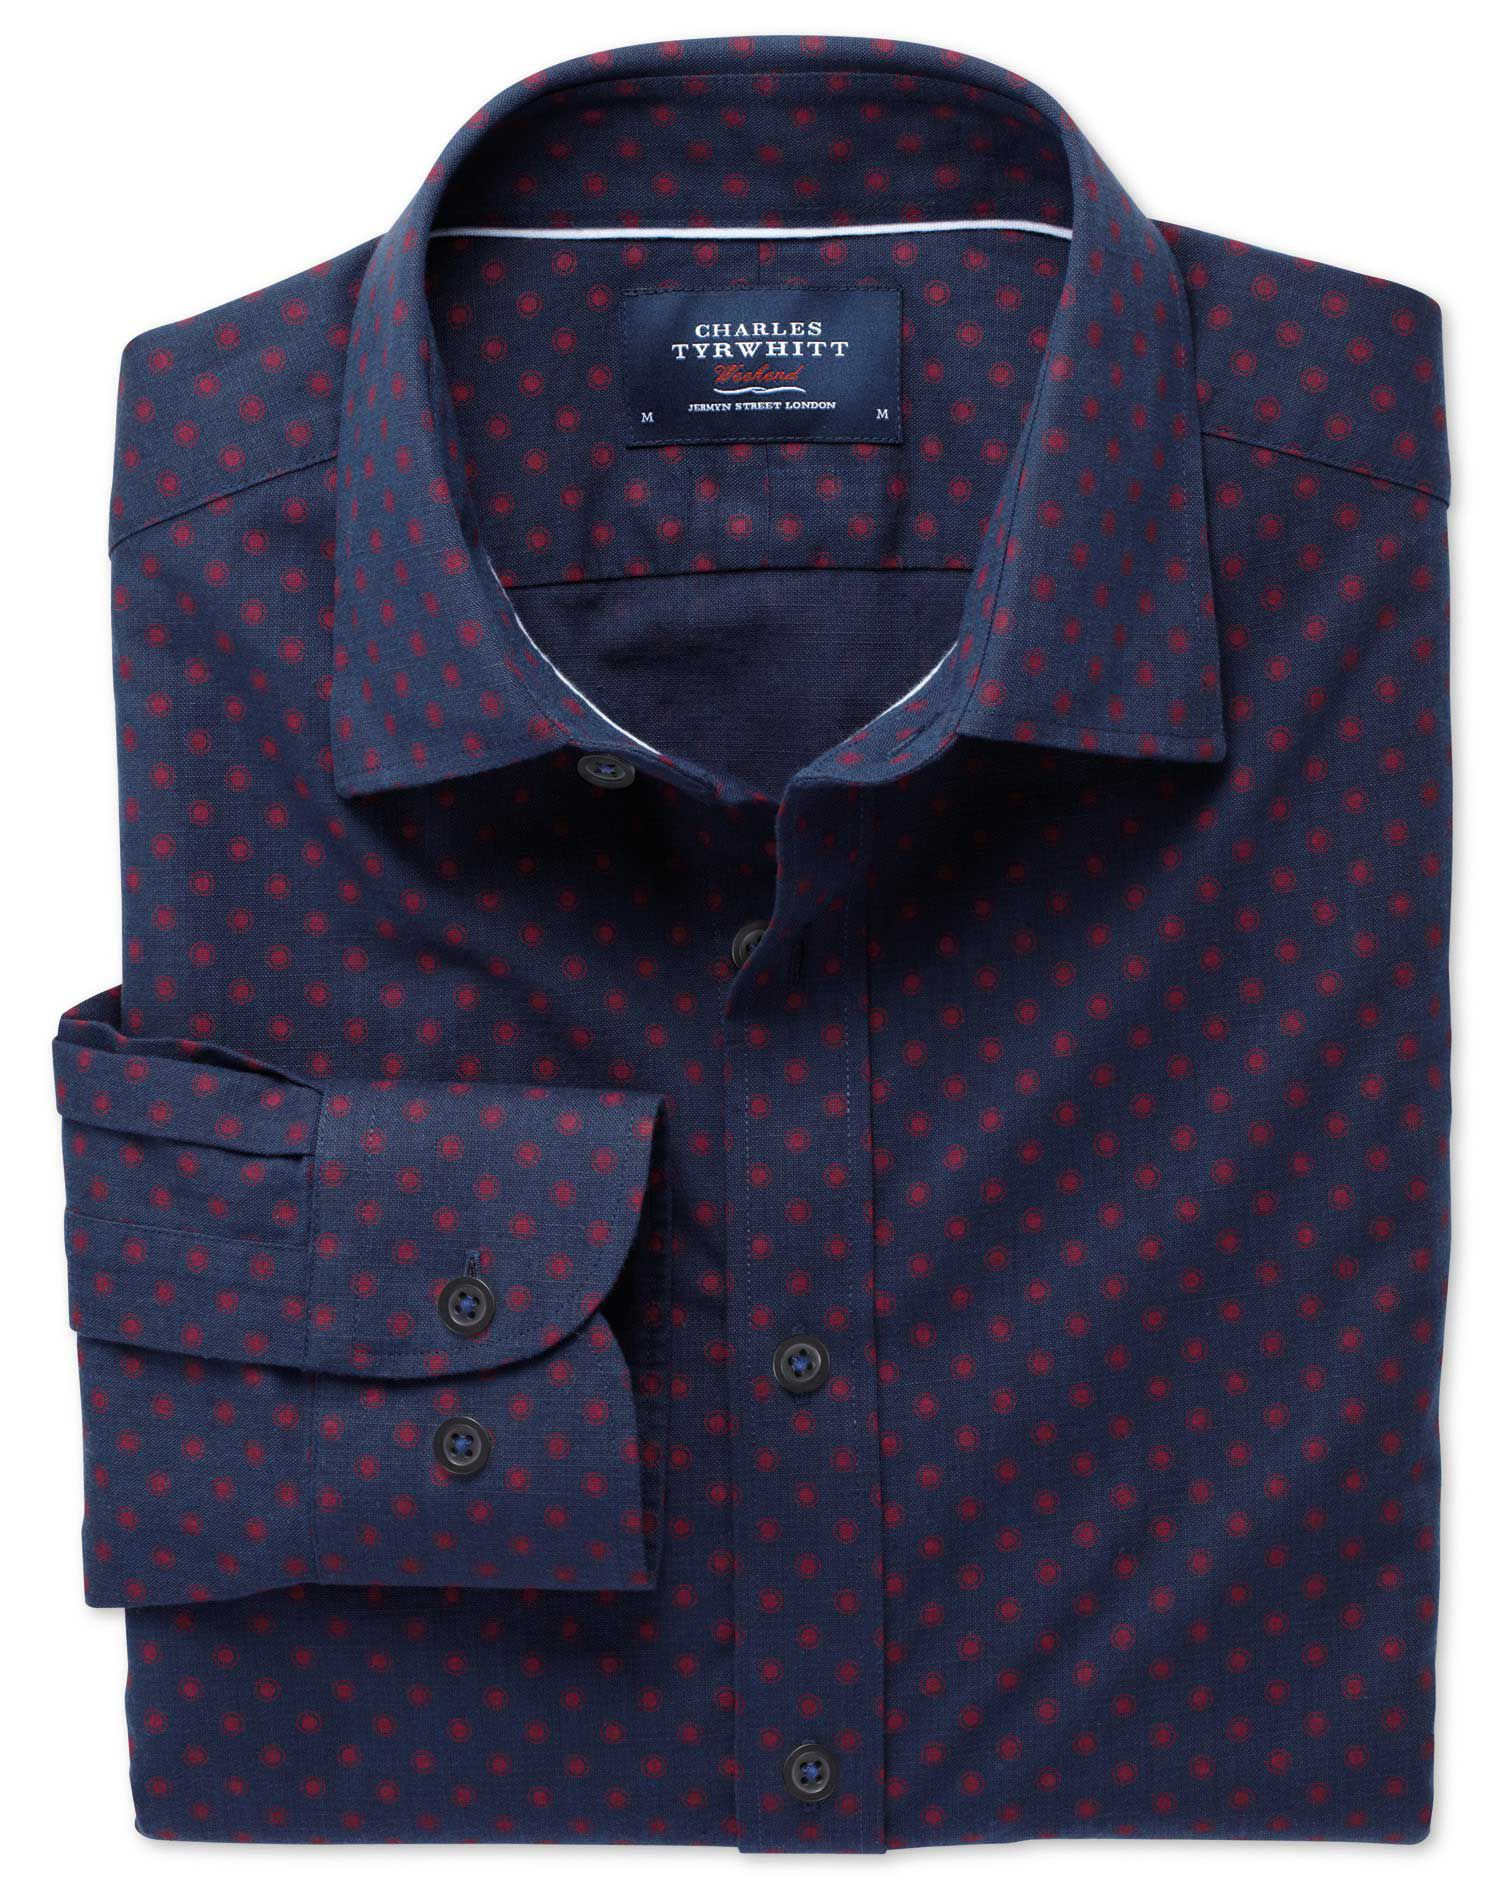 Extra Slim Fit Navy and Red Spot Print Cotton Shirt Single Cuff Size Small by Charles Tyrwhitt